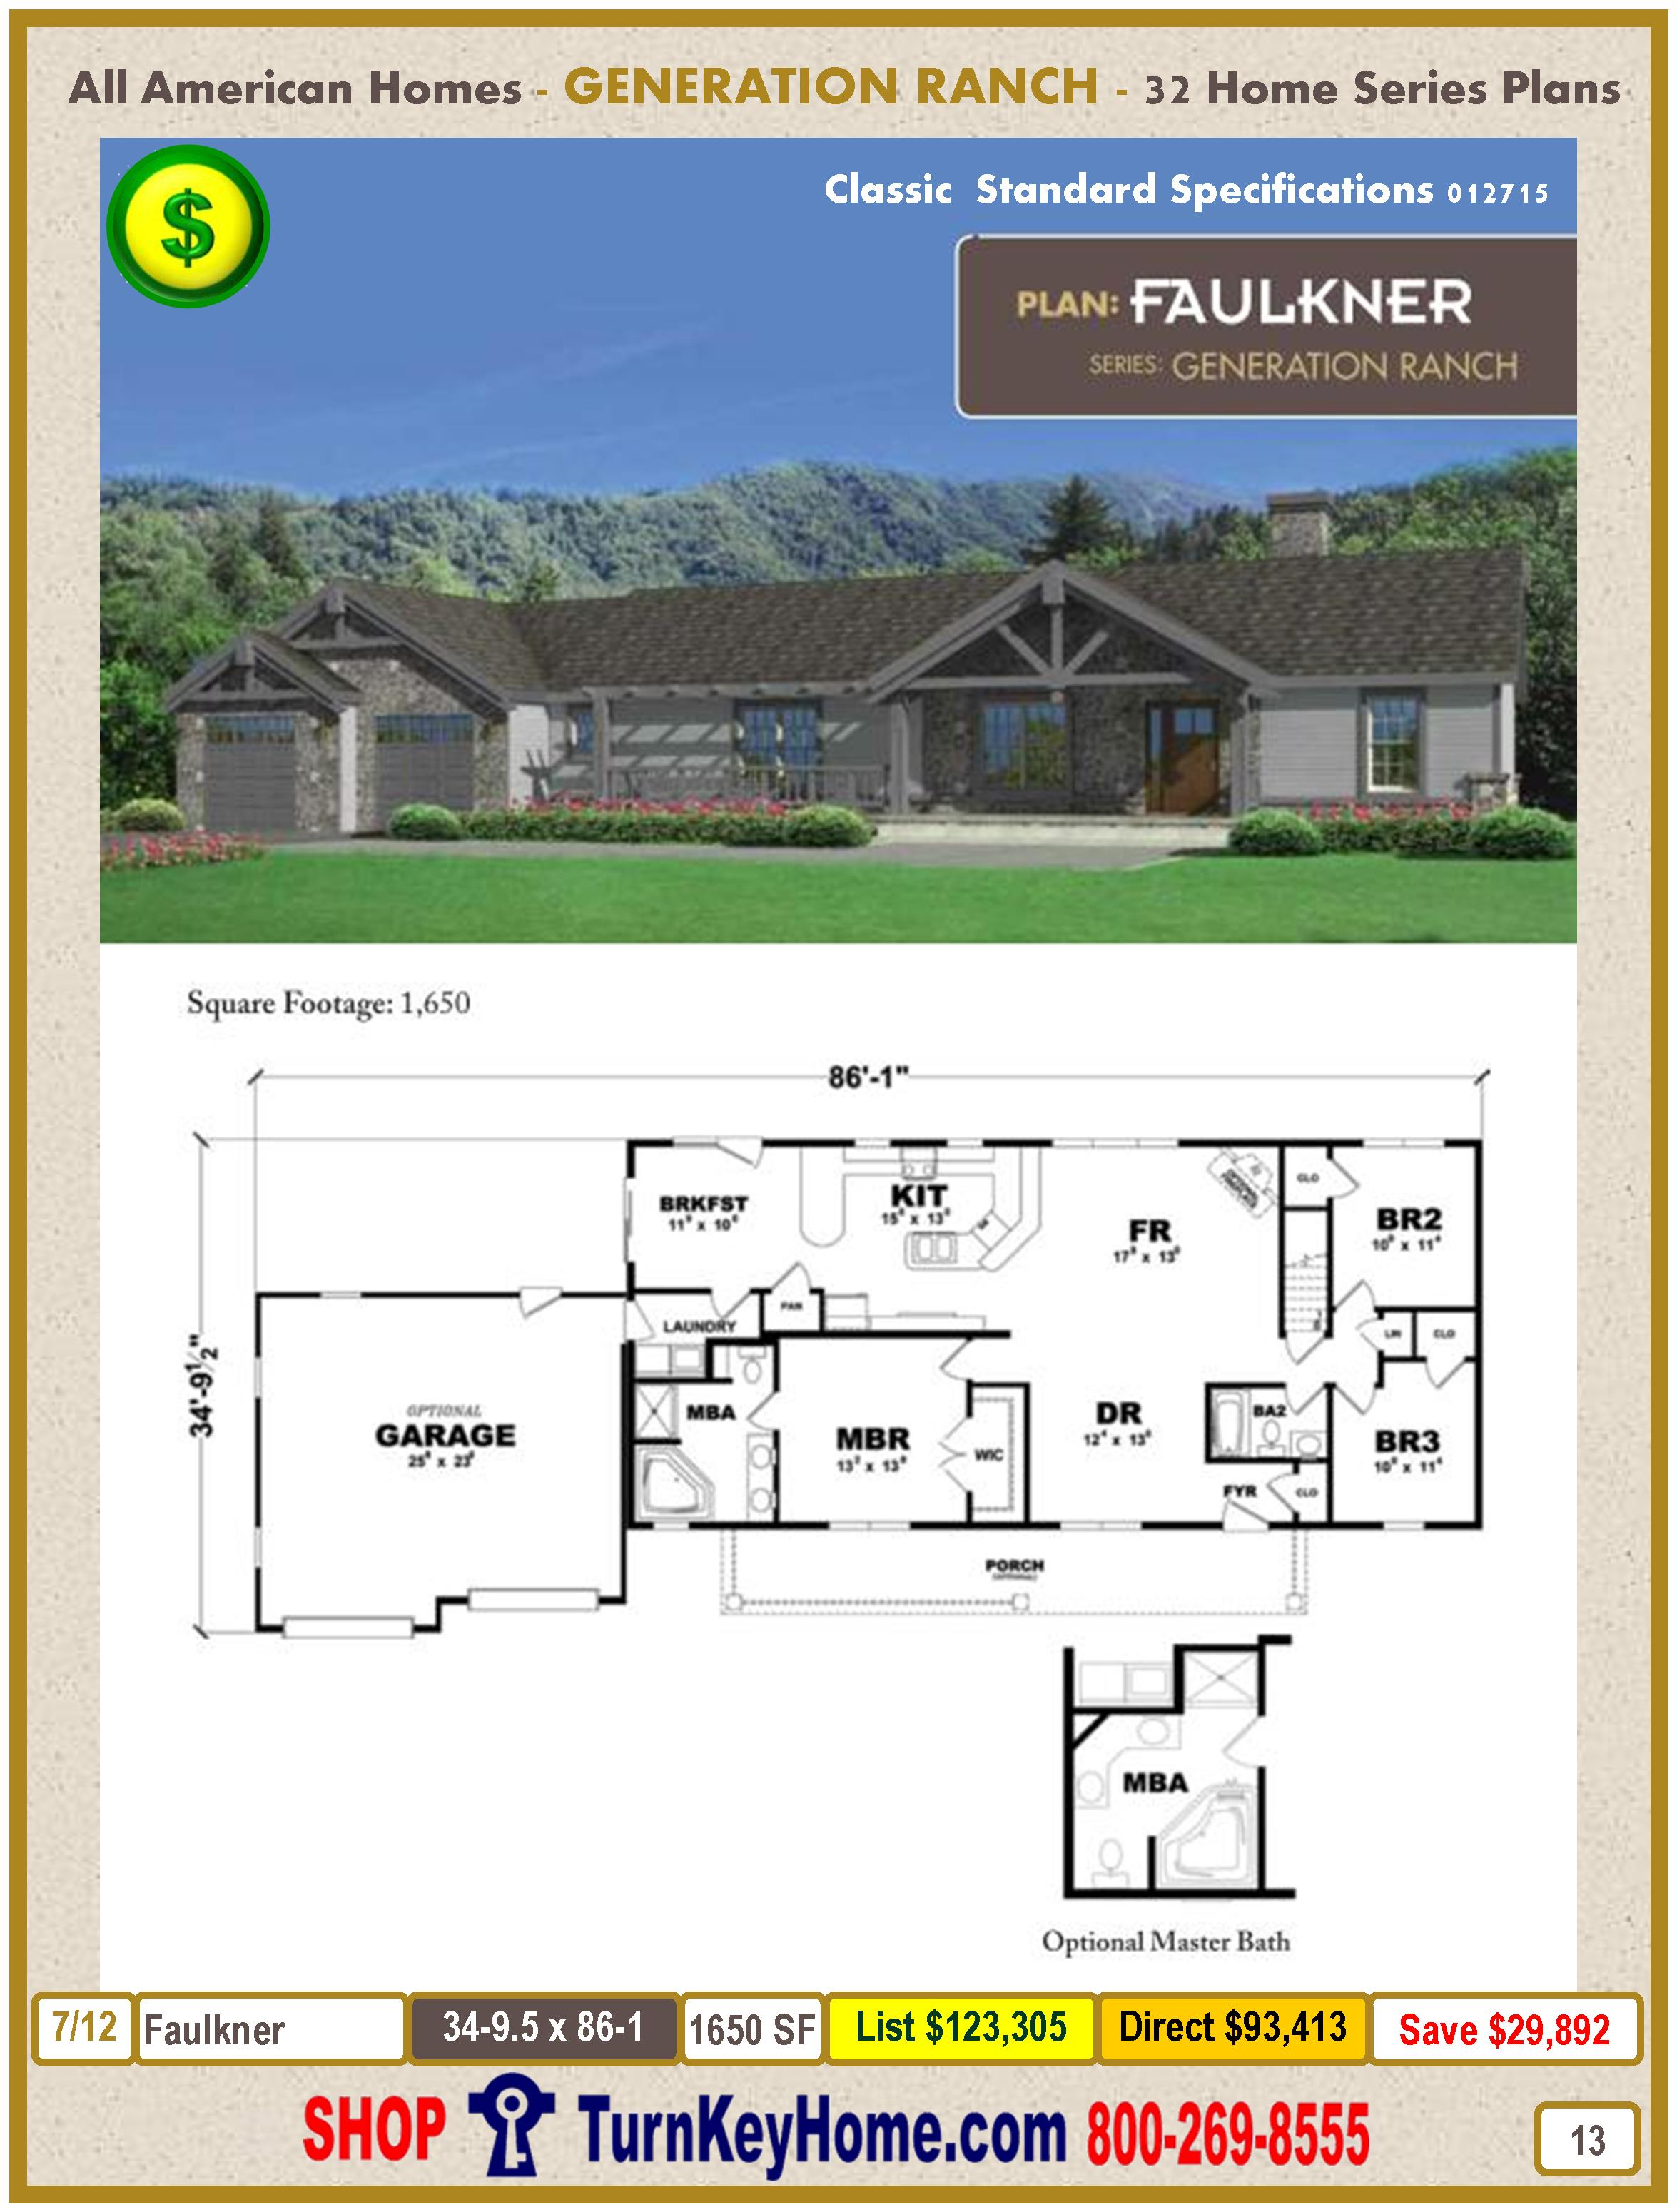 Modular.All.American.Homes.Generation.Ranch.Home.Series.Catalog.Page.13.Faulkner.Direct.Price.021415